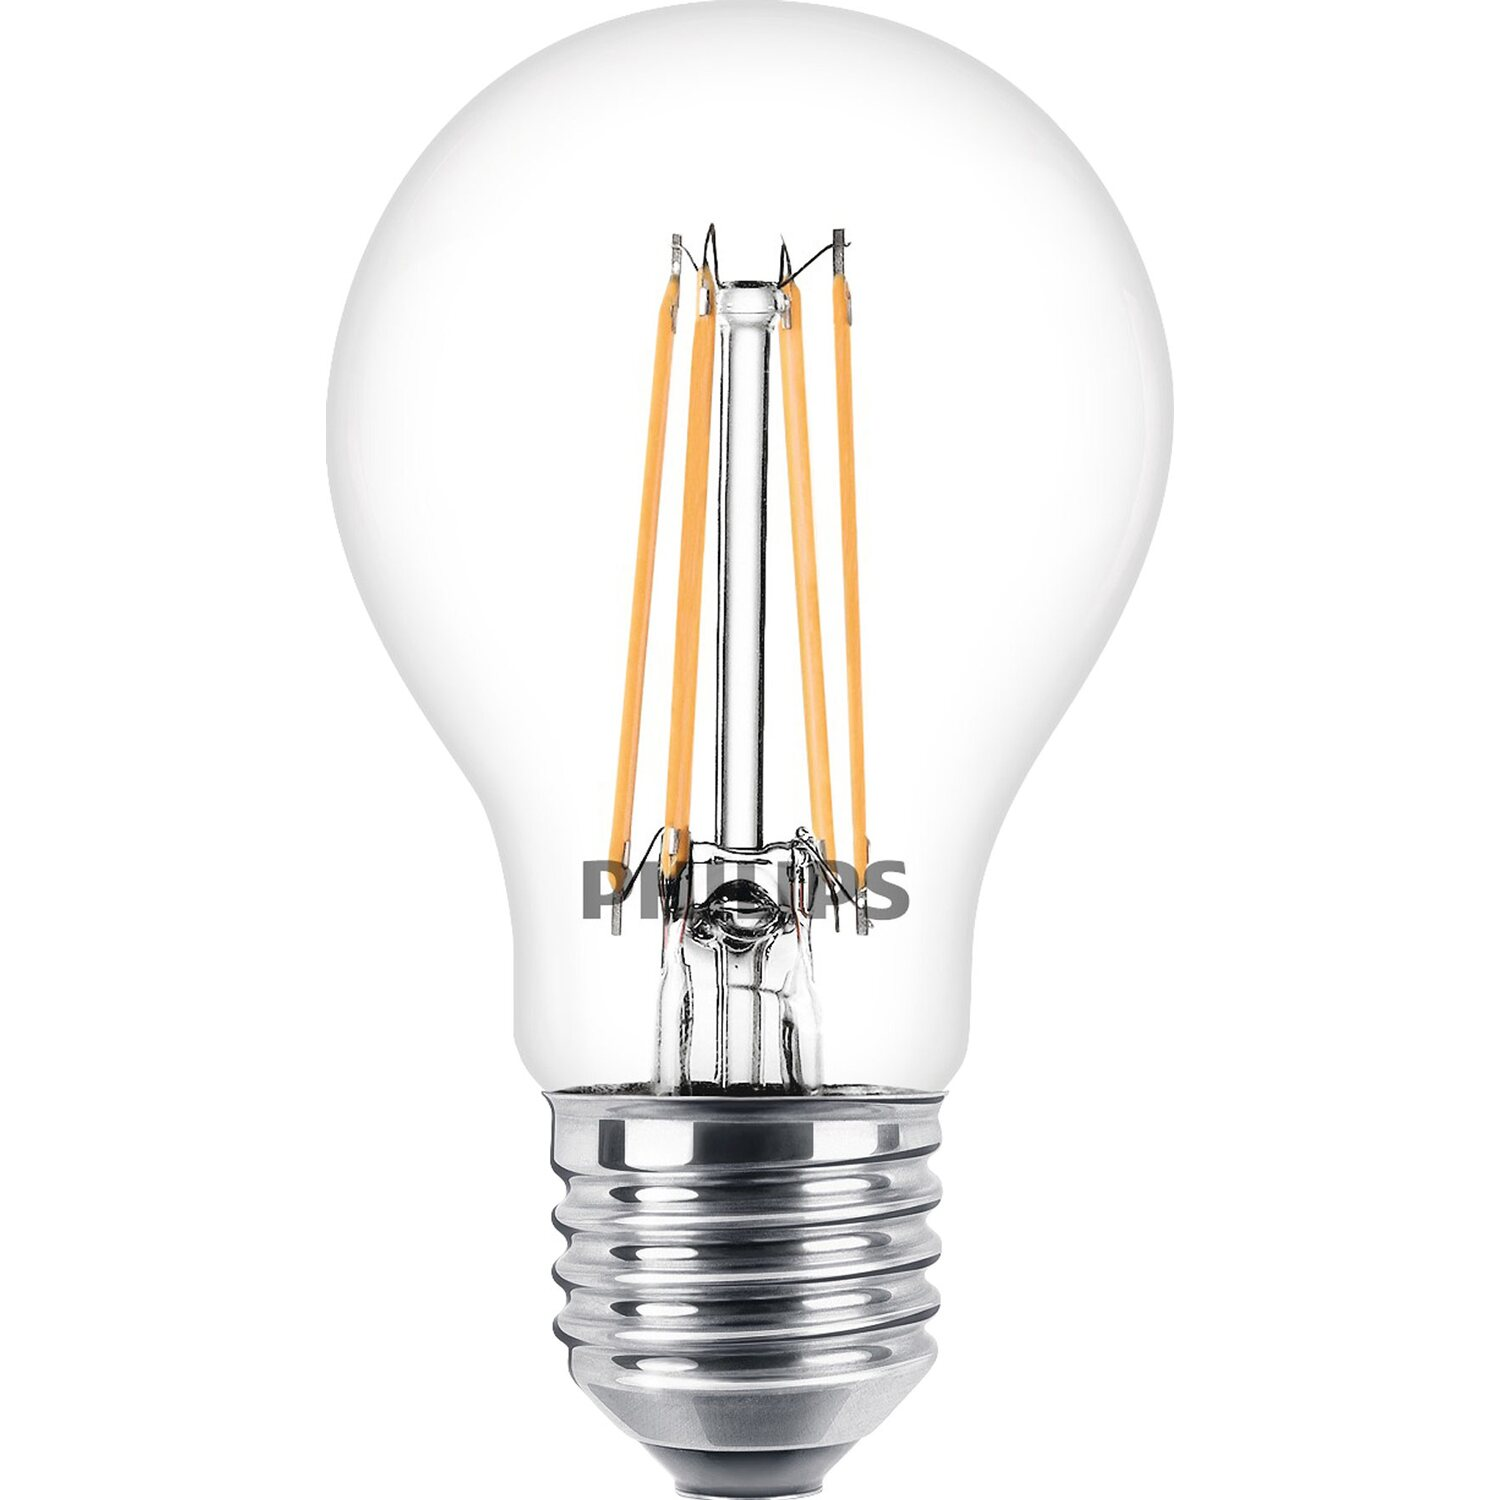 Philips lampadina led gocia filamento a 6 w e27 bianco for Lampadine a filamento led